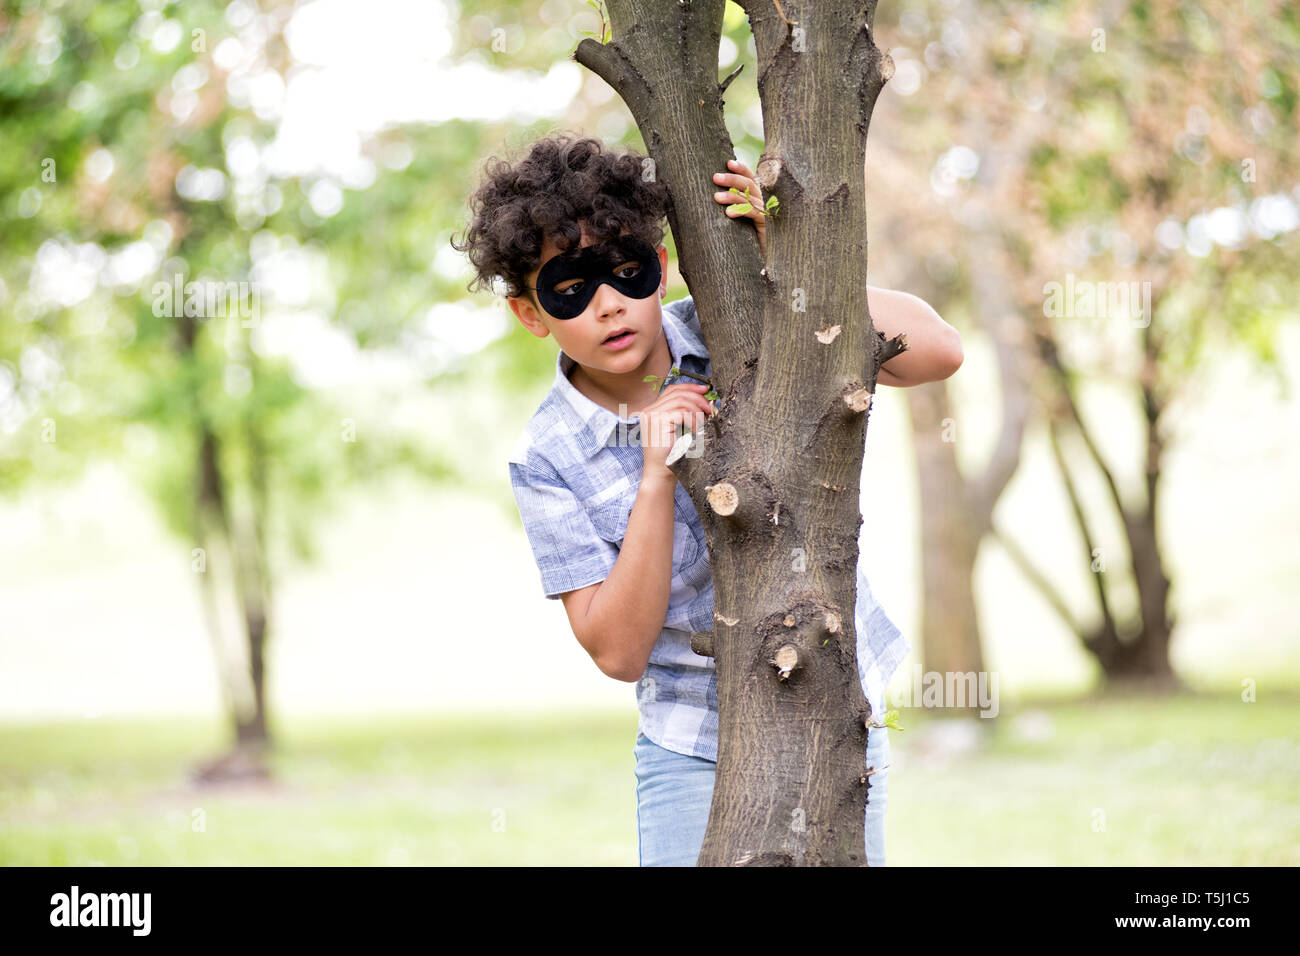 Young boy wearing a black mask standing in a tree hide in a park peering around the trunk watching intently with an absorbed expression - Stock Image